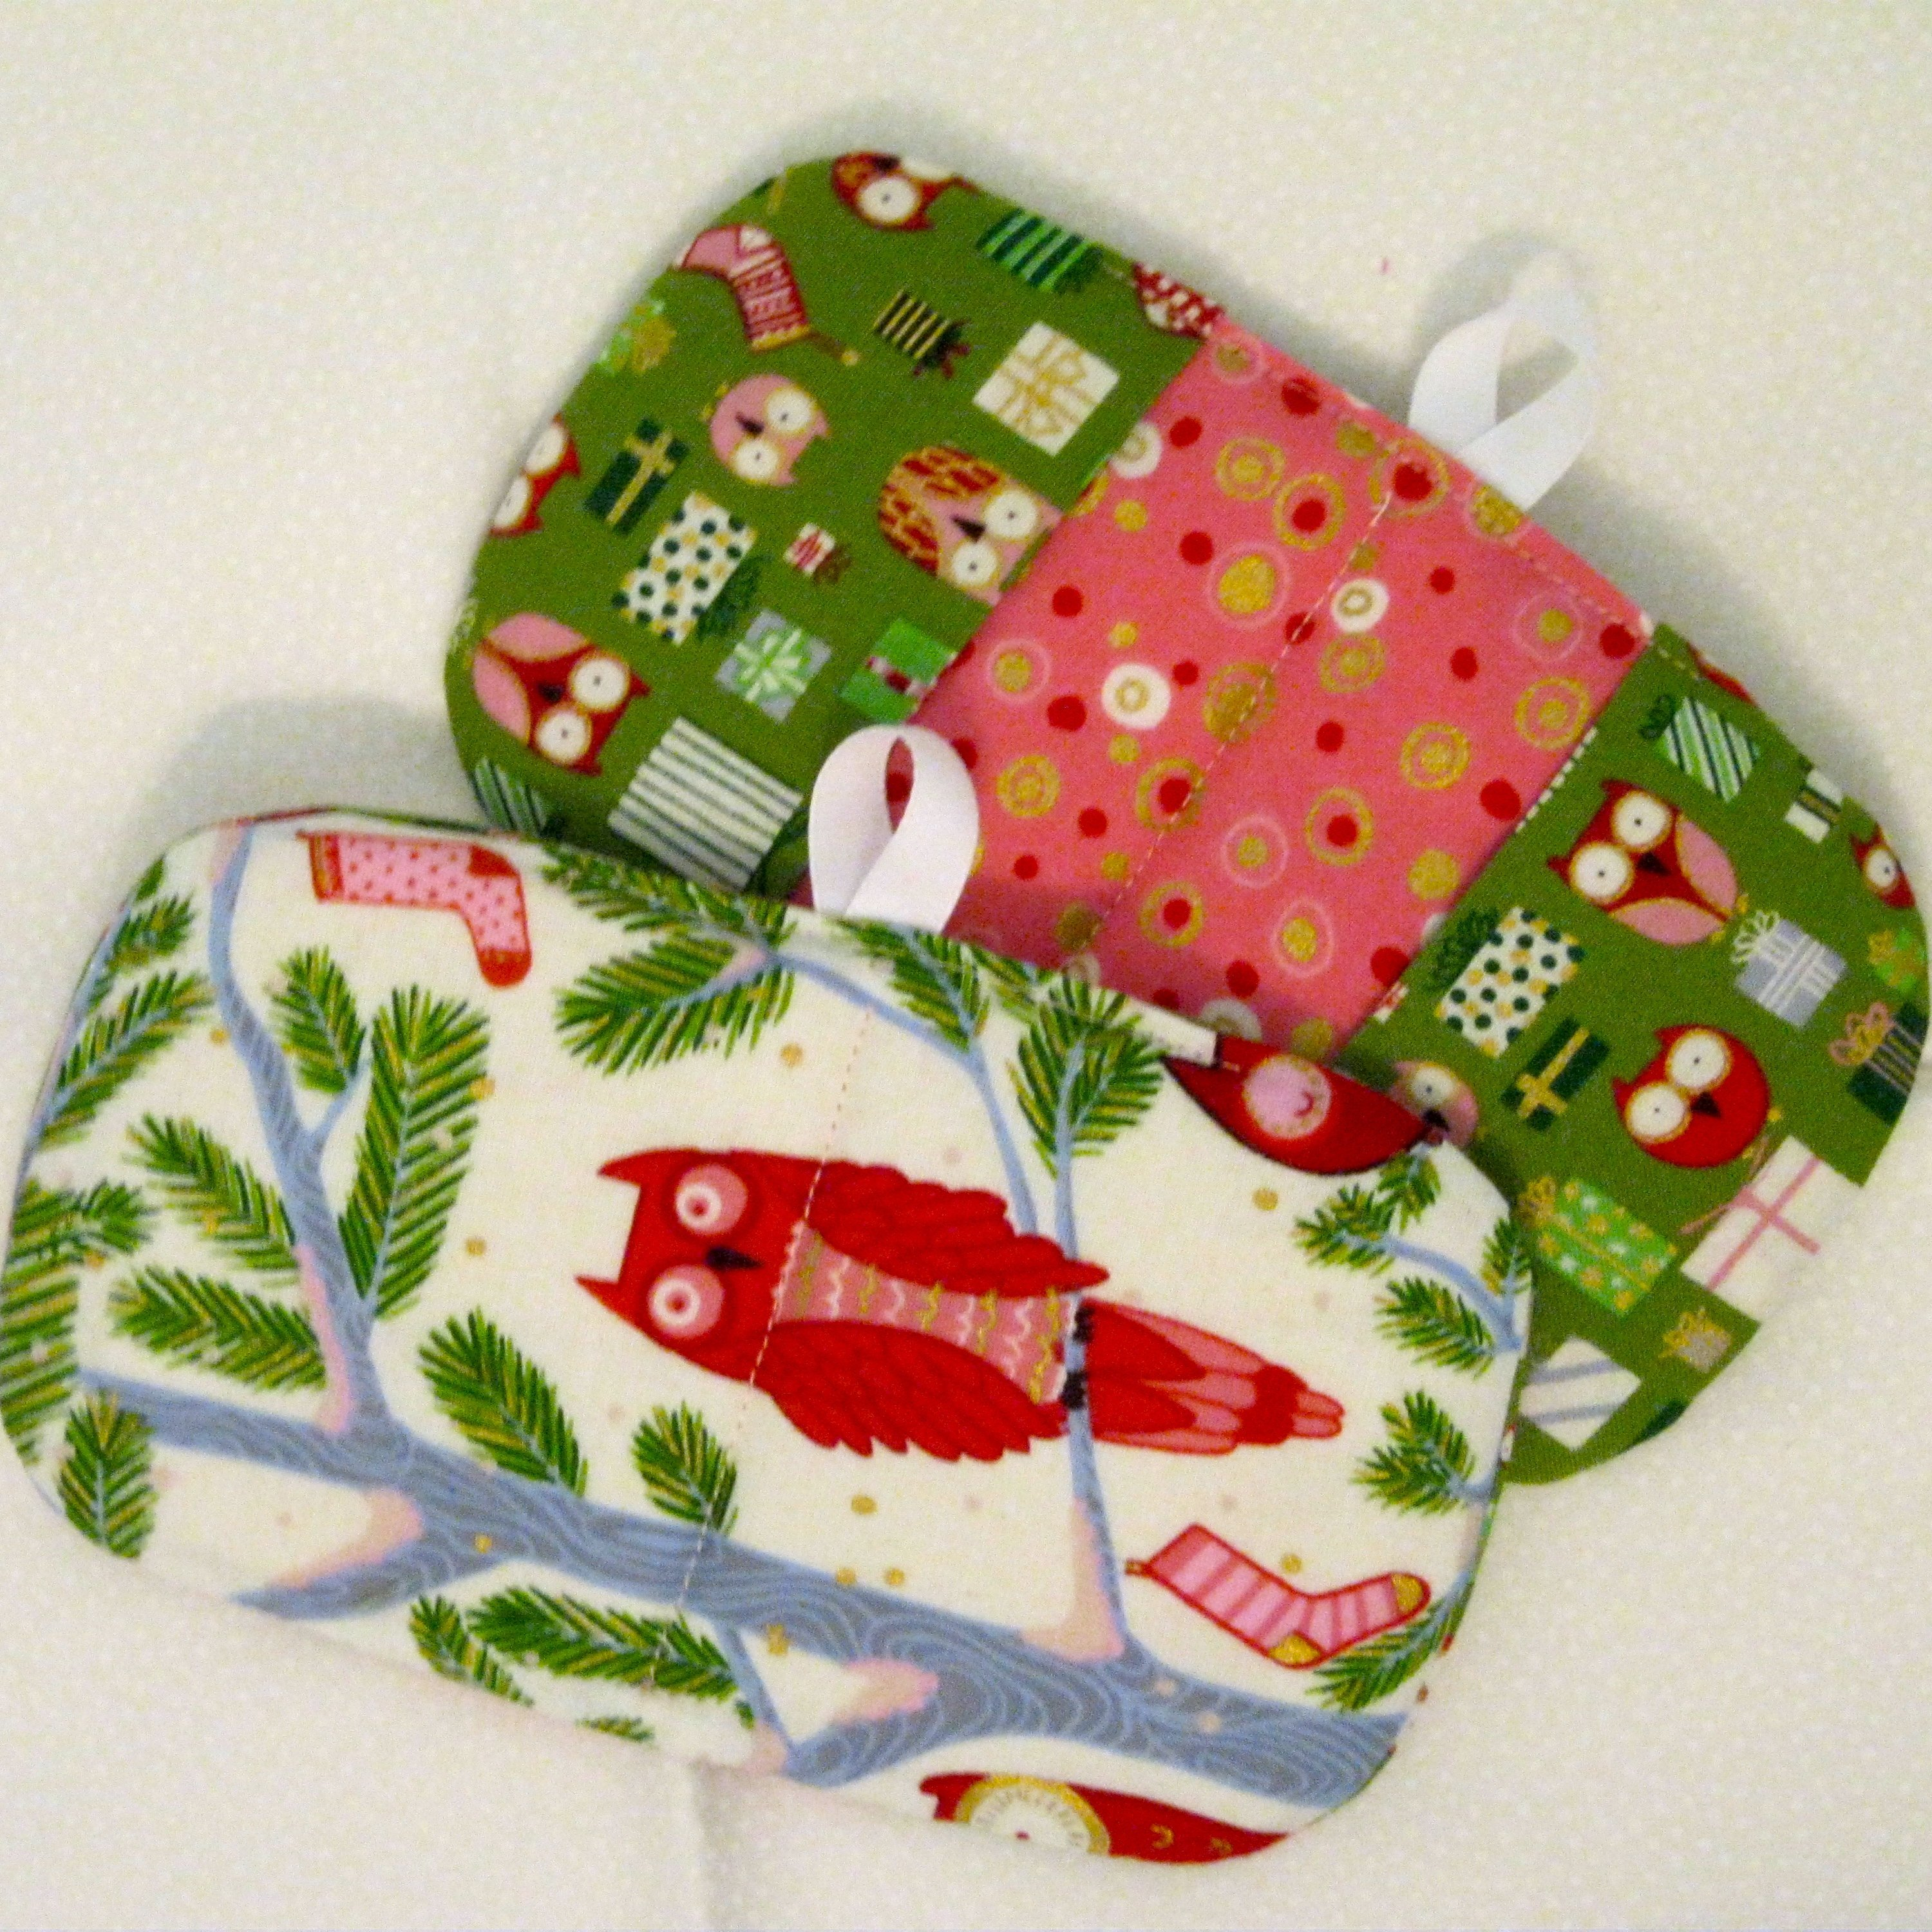 Micro Mitts - darling - and they work!